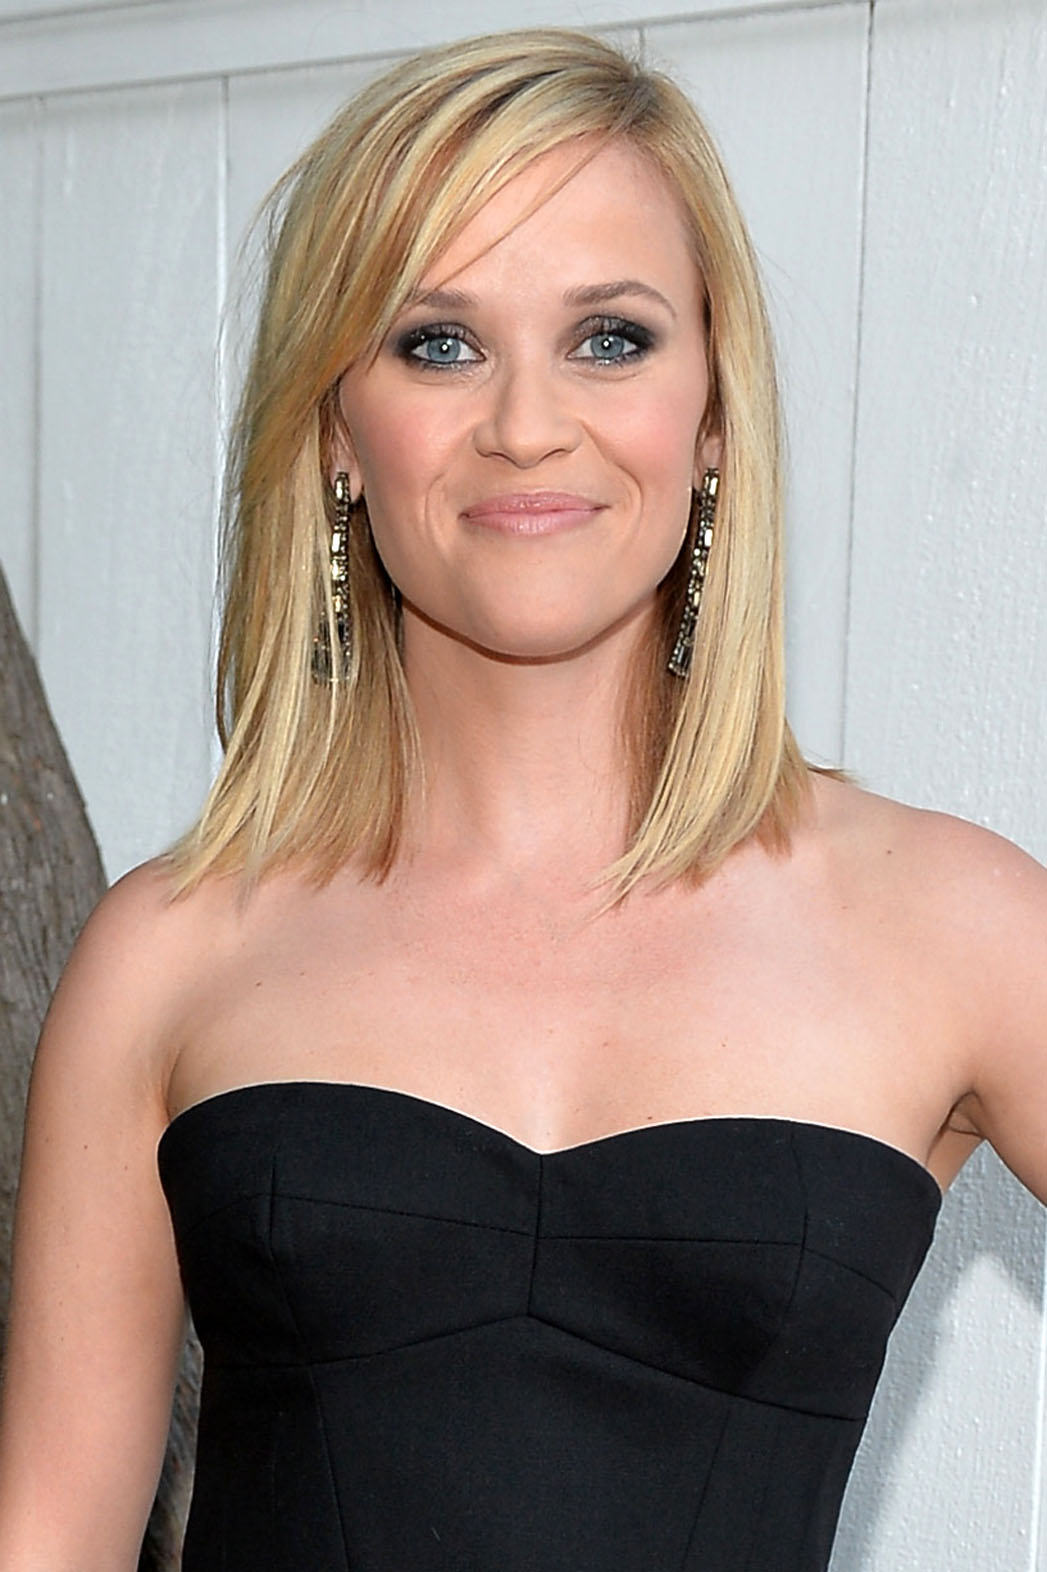 Reese Witherspoon Headshot - P 2013